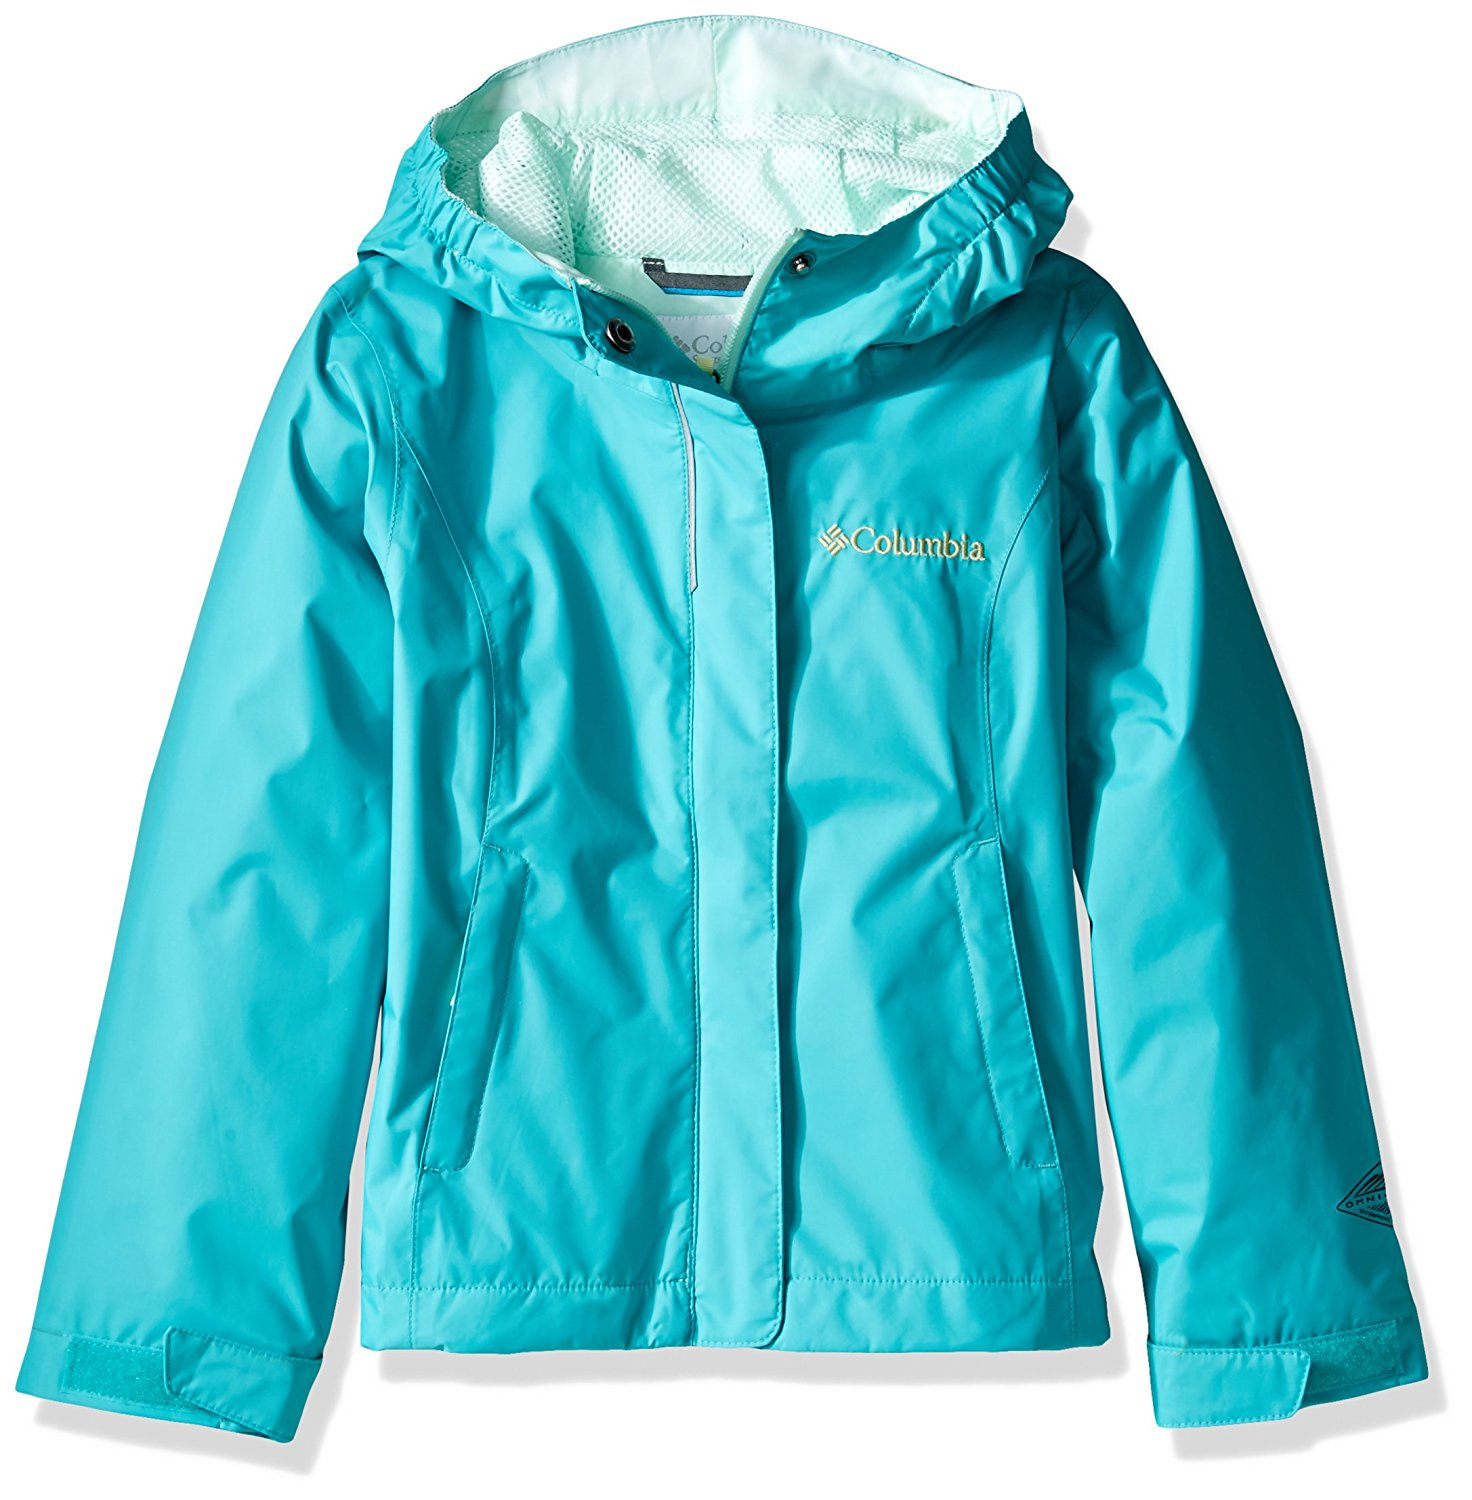 Columbia Children's Arcadia Rain Shell Jacket